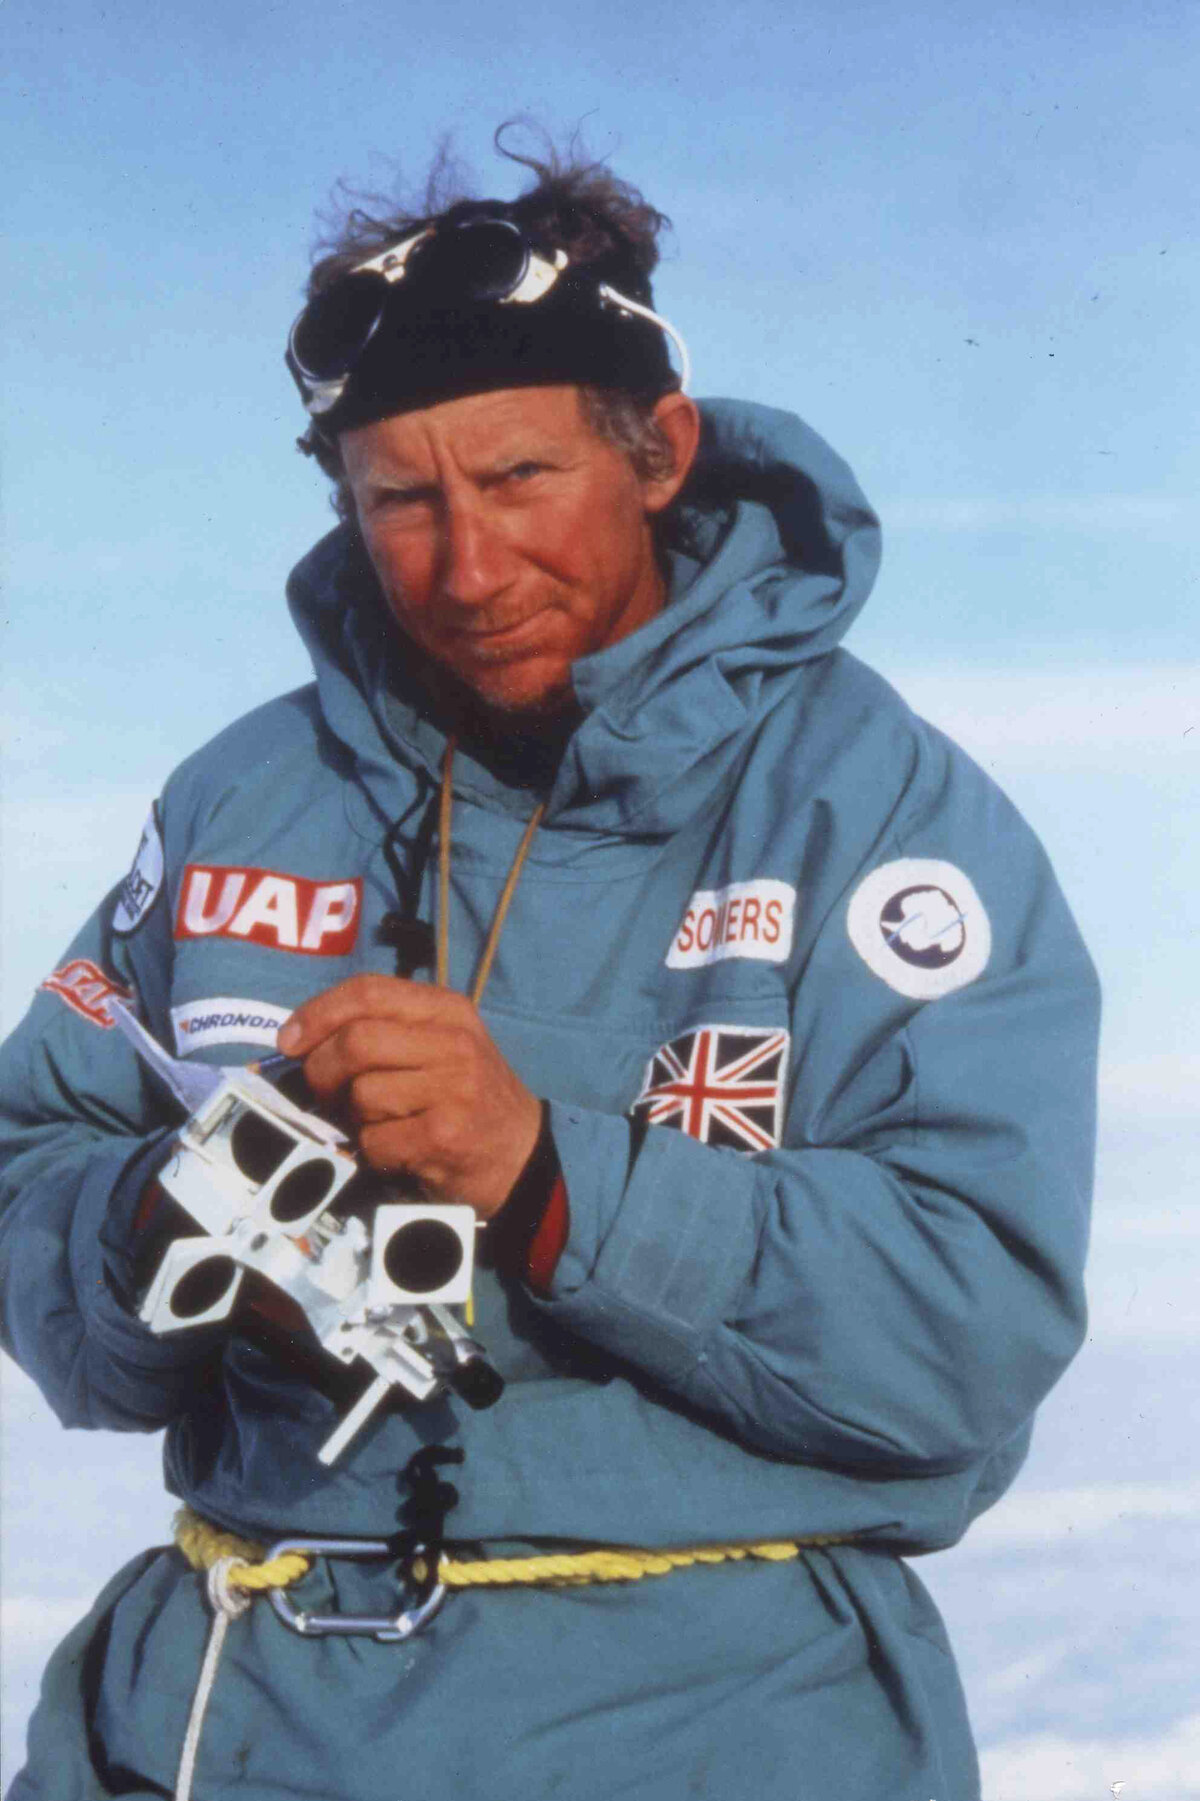 1990 International Trans-Antarctica Expedition. First non-mechanized crossing of Antarctica